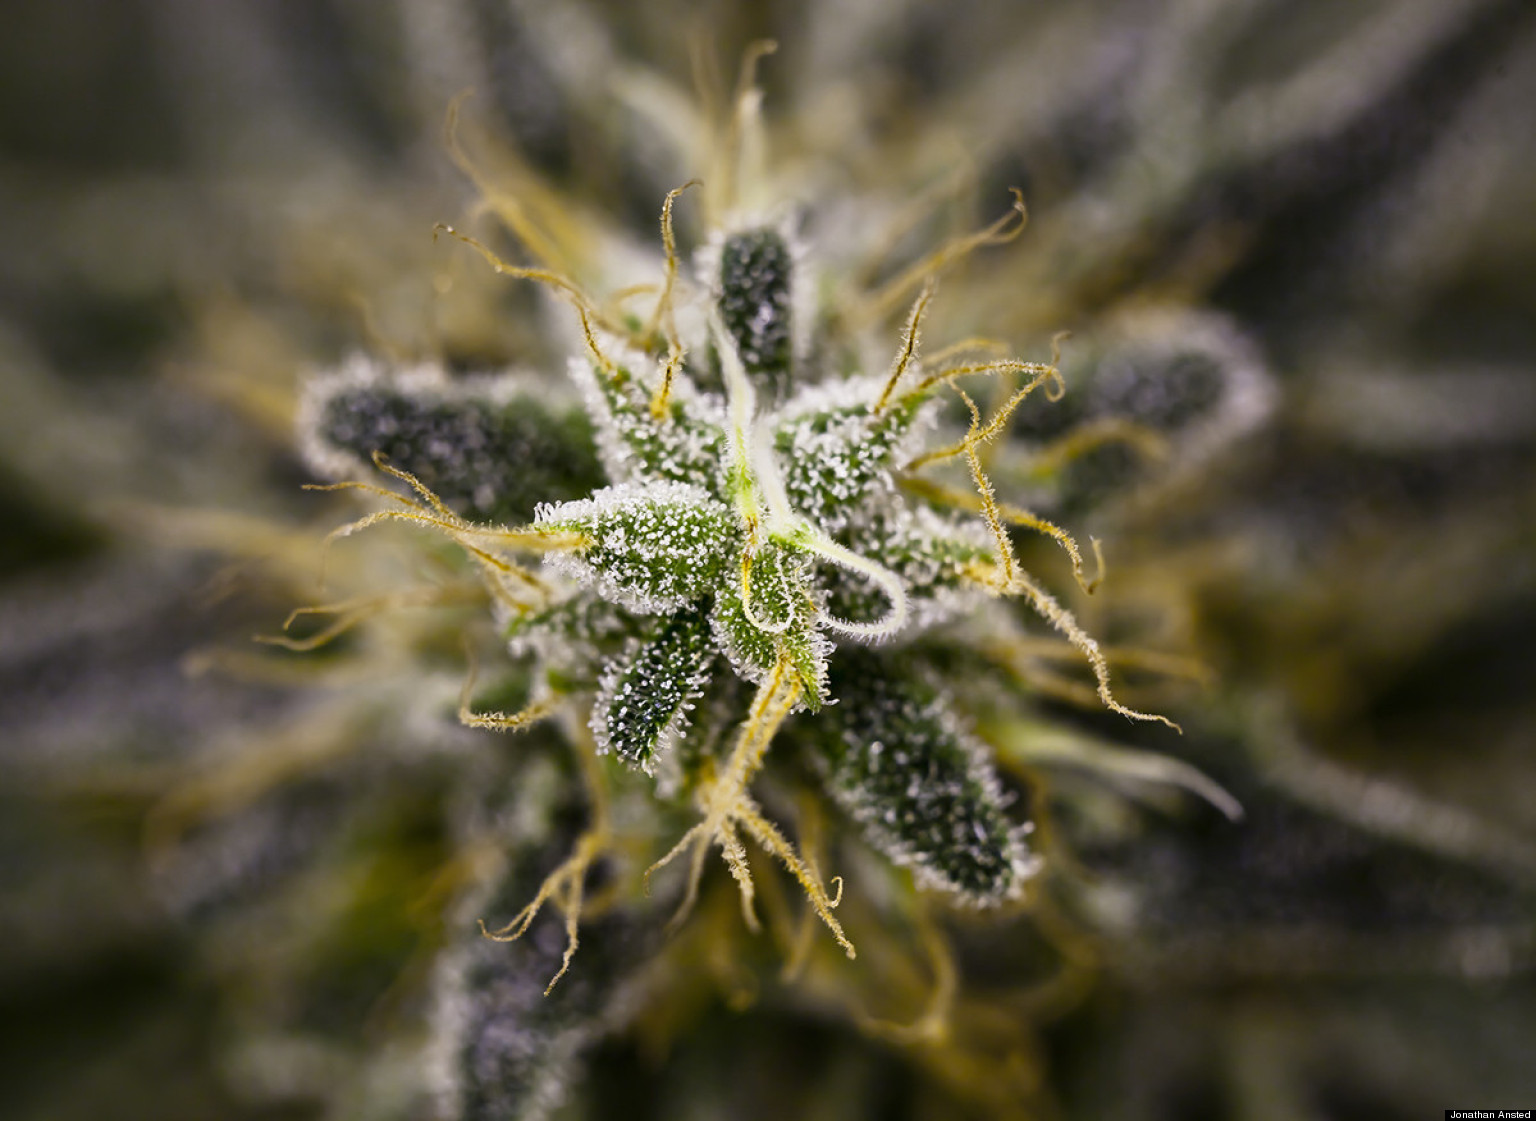 Marijuana Porn: Check Out These Gorgeous Shots Of Weed